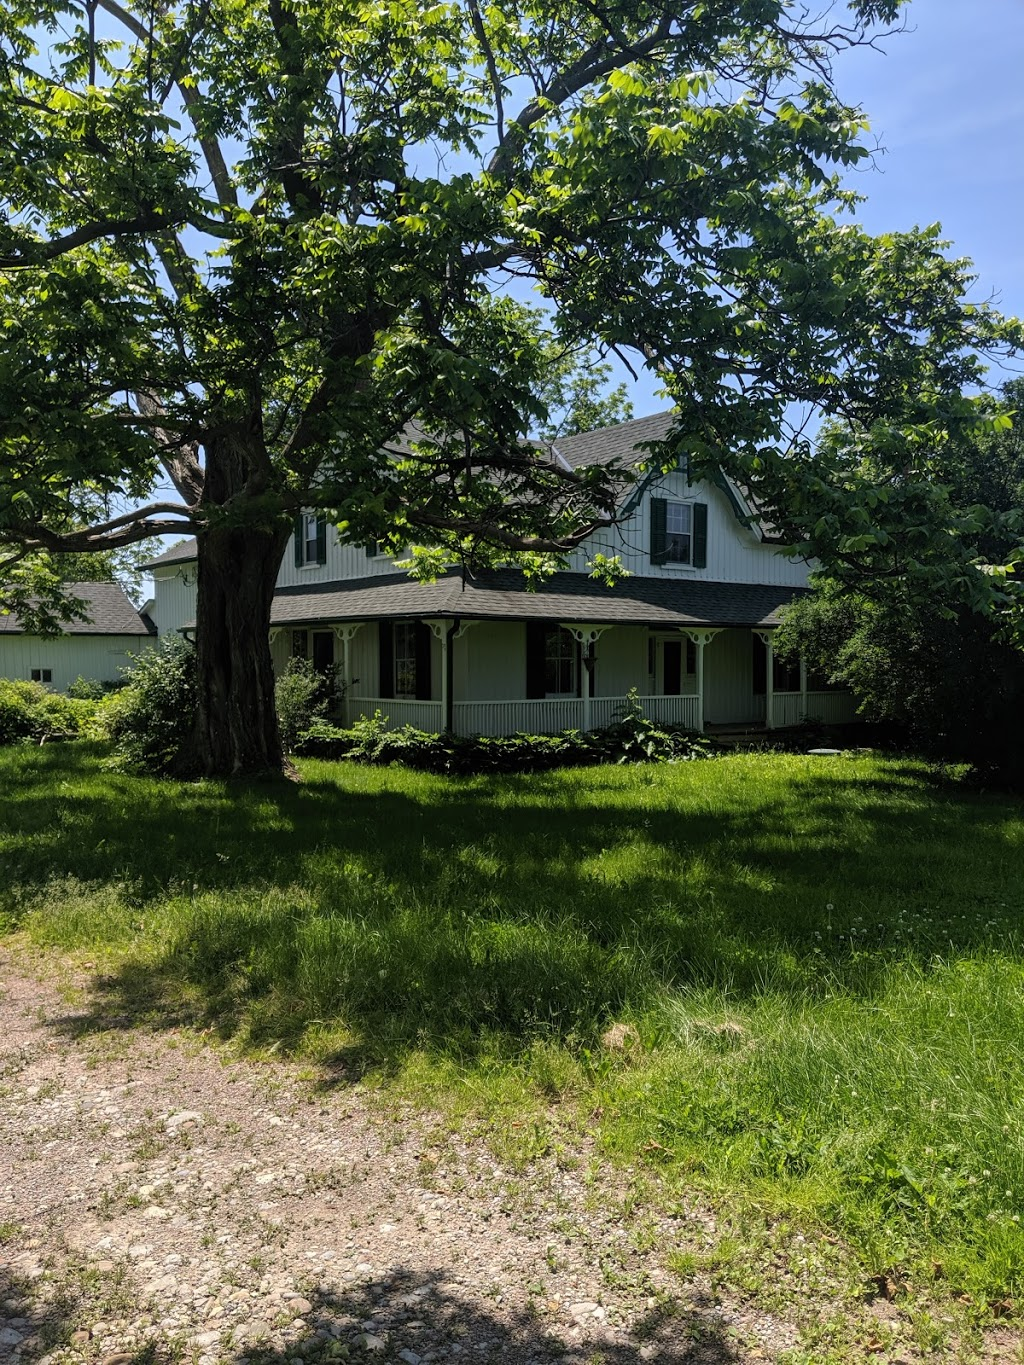 Anne of Green Gables (1985) House | museum | 7501 Steeles Ave E, Scarborough, ON M1X, Canada, Canada